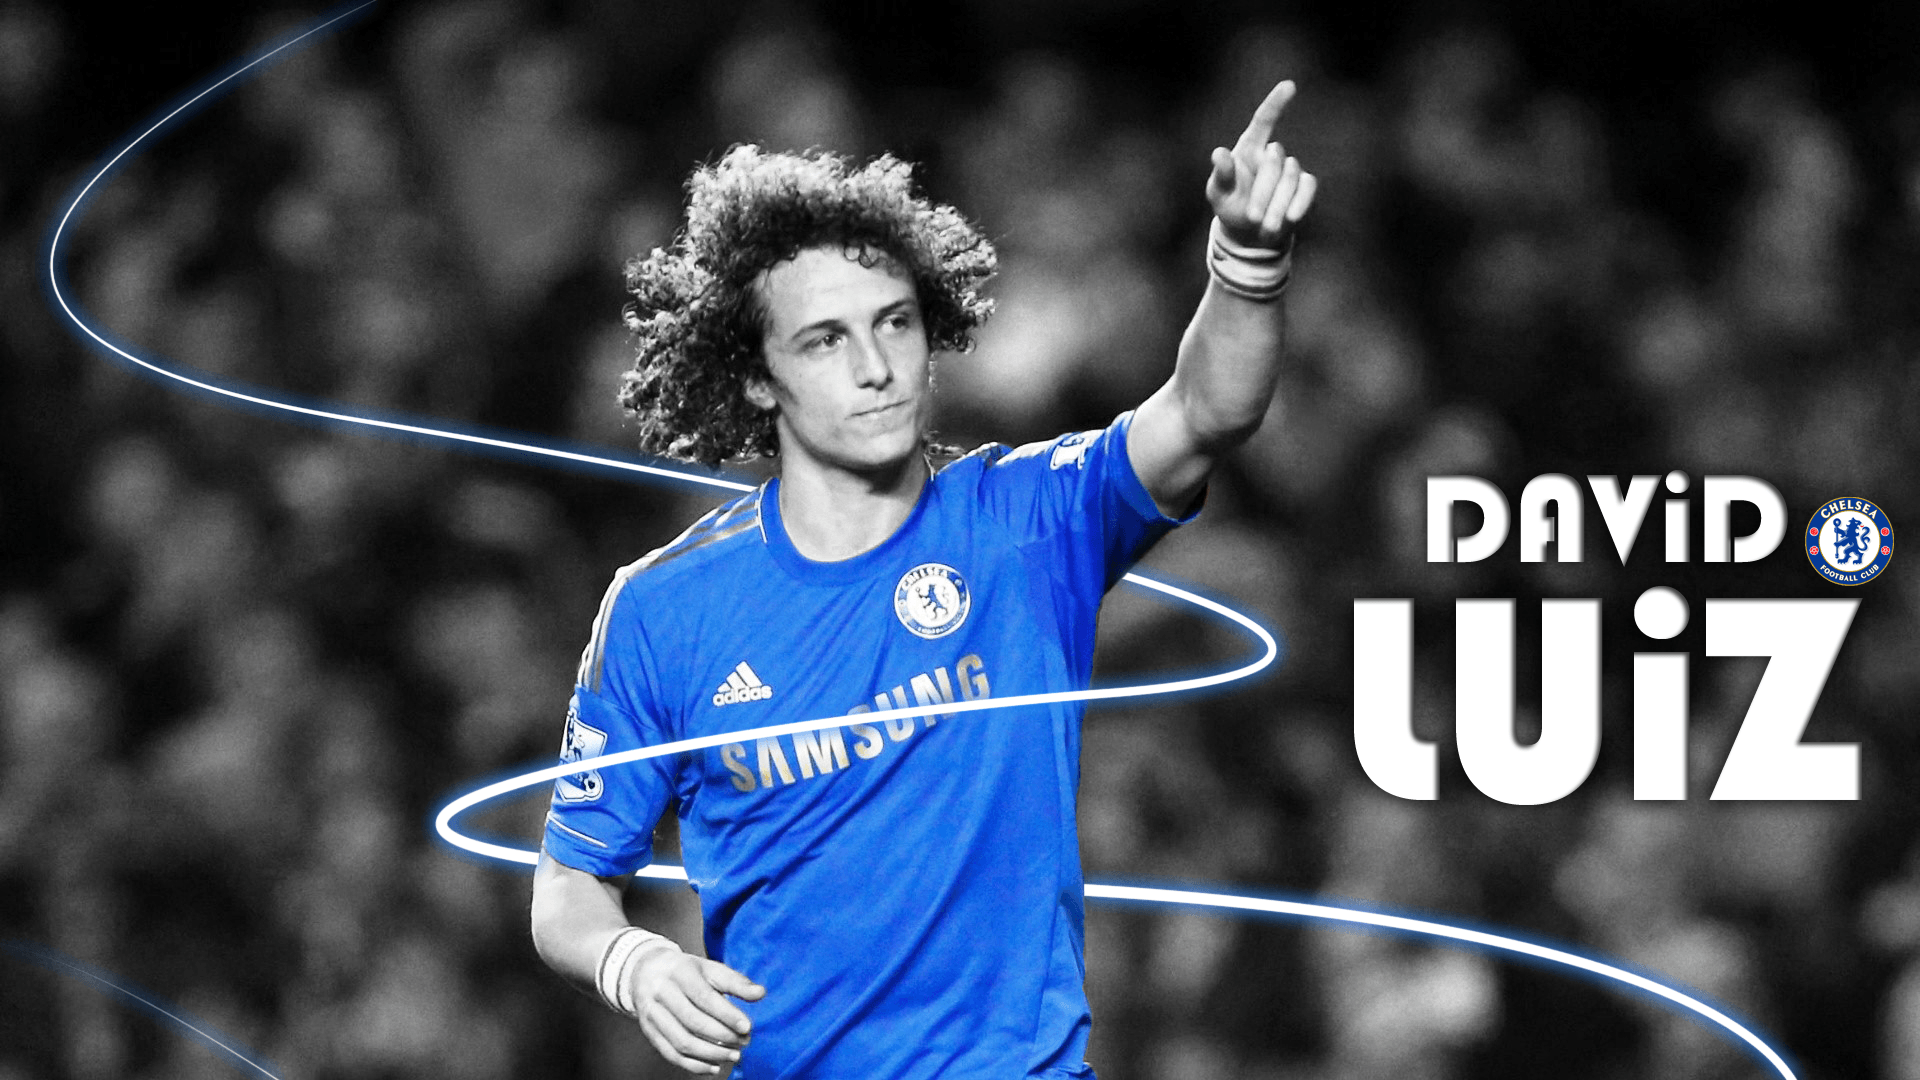 David Luiz Wallpapers 2016